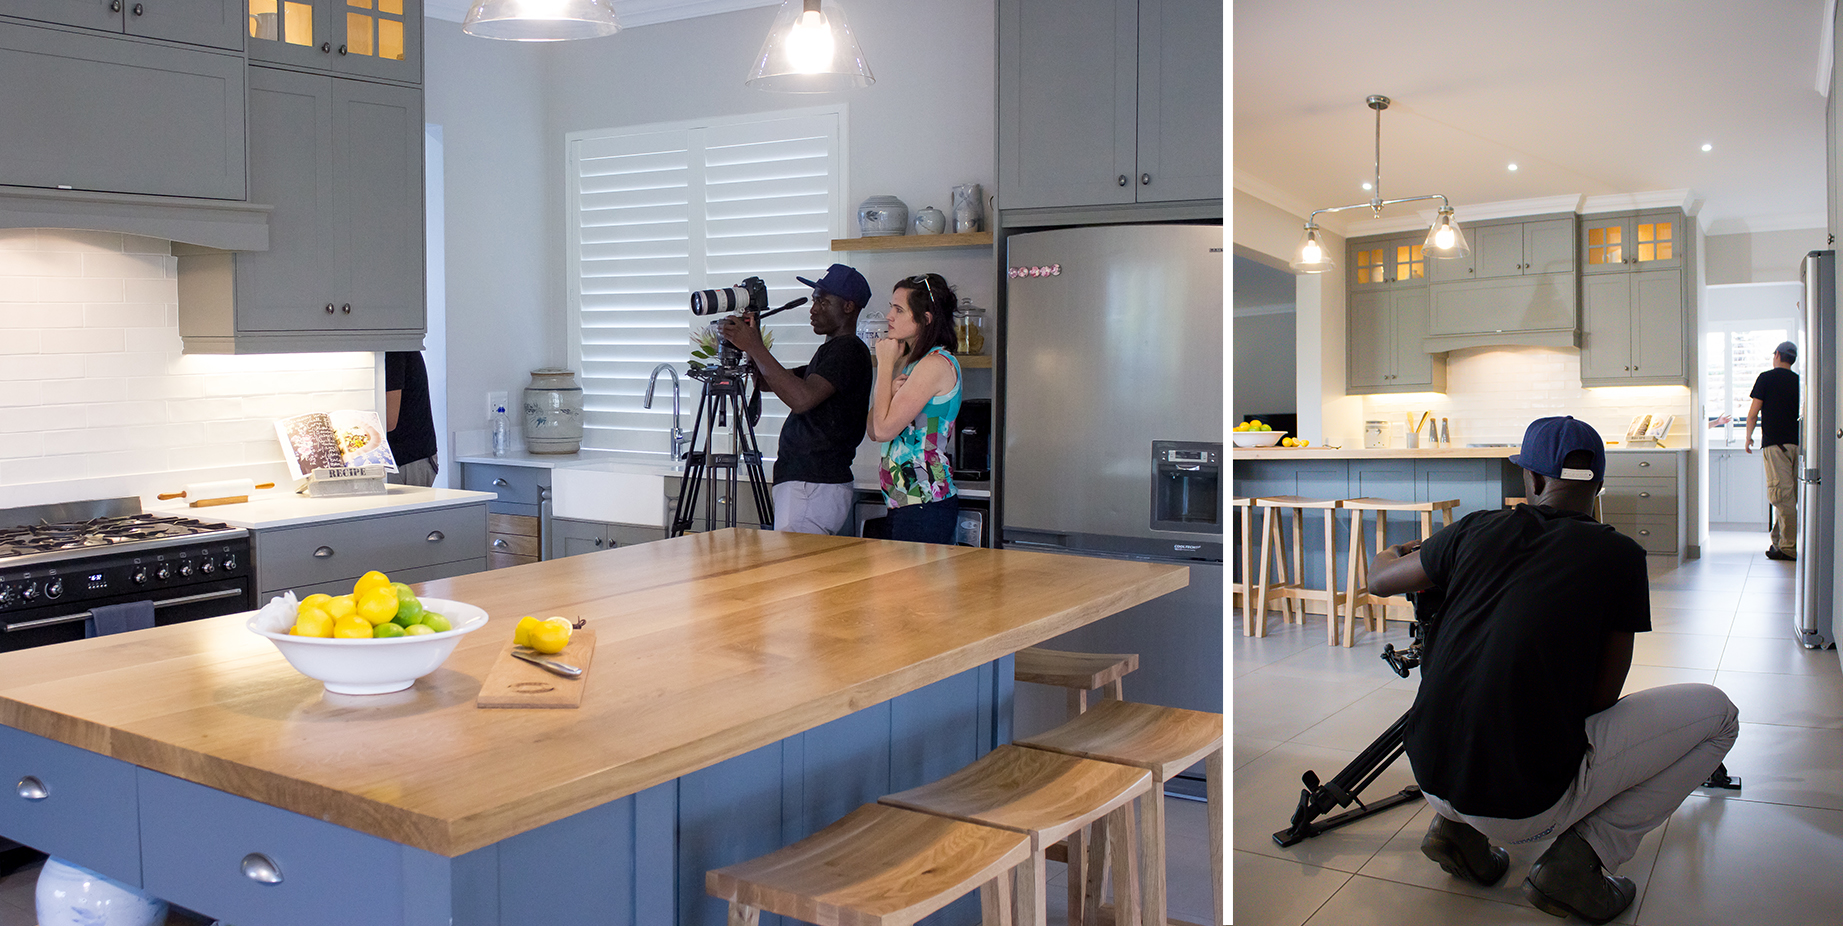 The film crew and director hard at work shooting close ups of the kitchen.